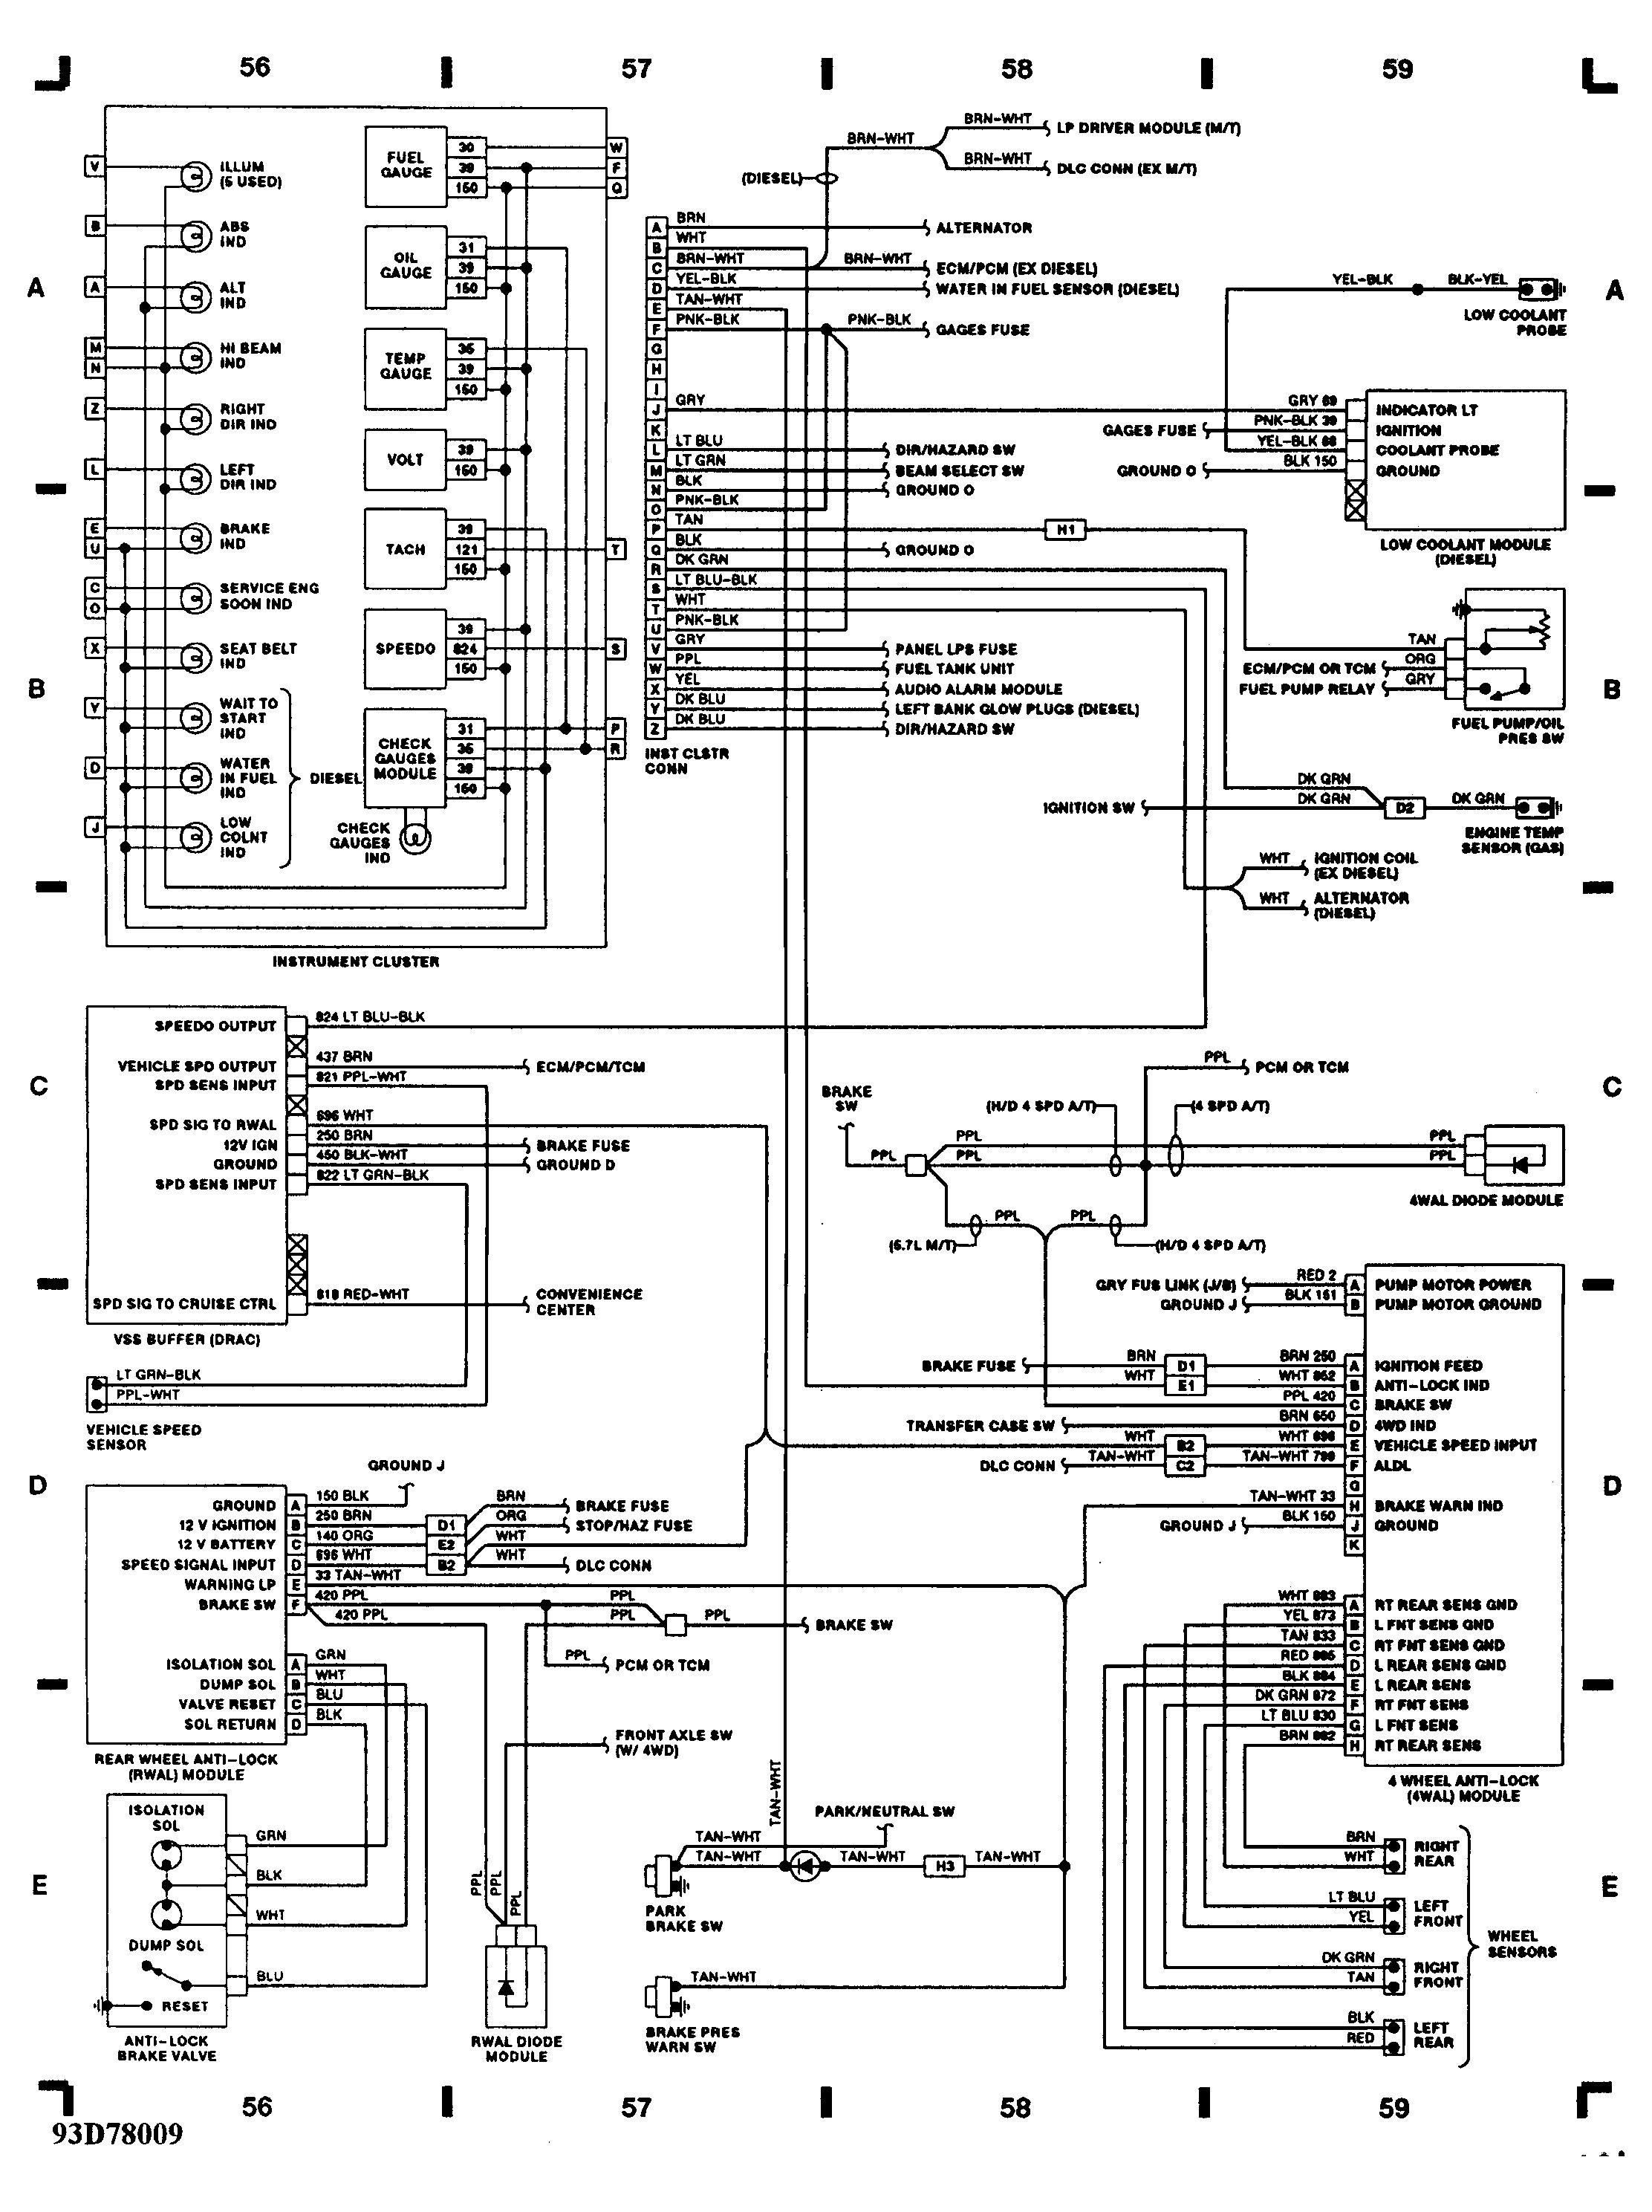 2001 Chevy Silverado Wiring Diagram Gm Ls1 Engine Wiring Diagram Reveolution Wiring Diagram • Of 2001 Chevy Silverado Wiring Diagram